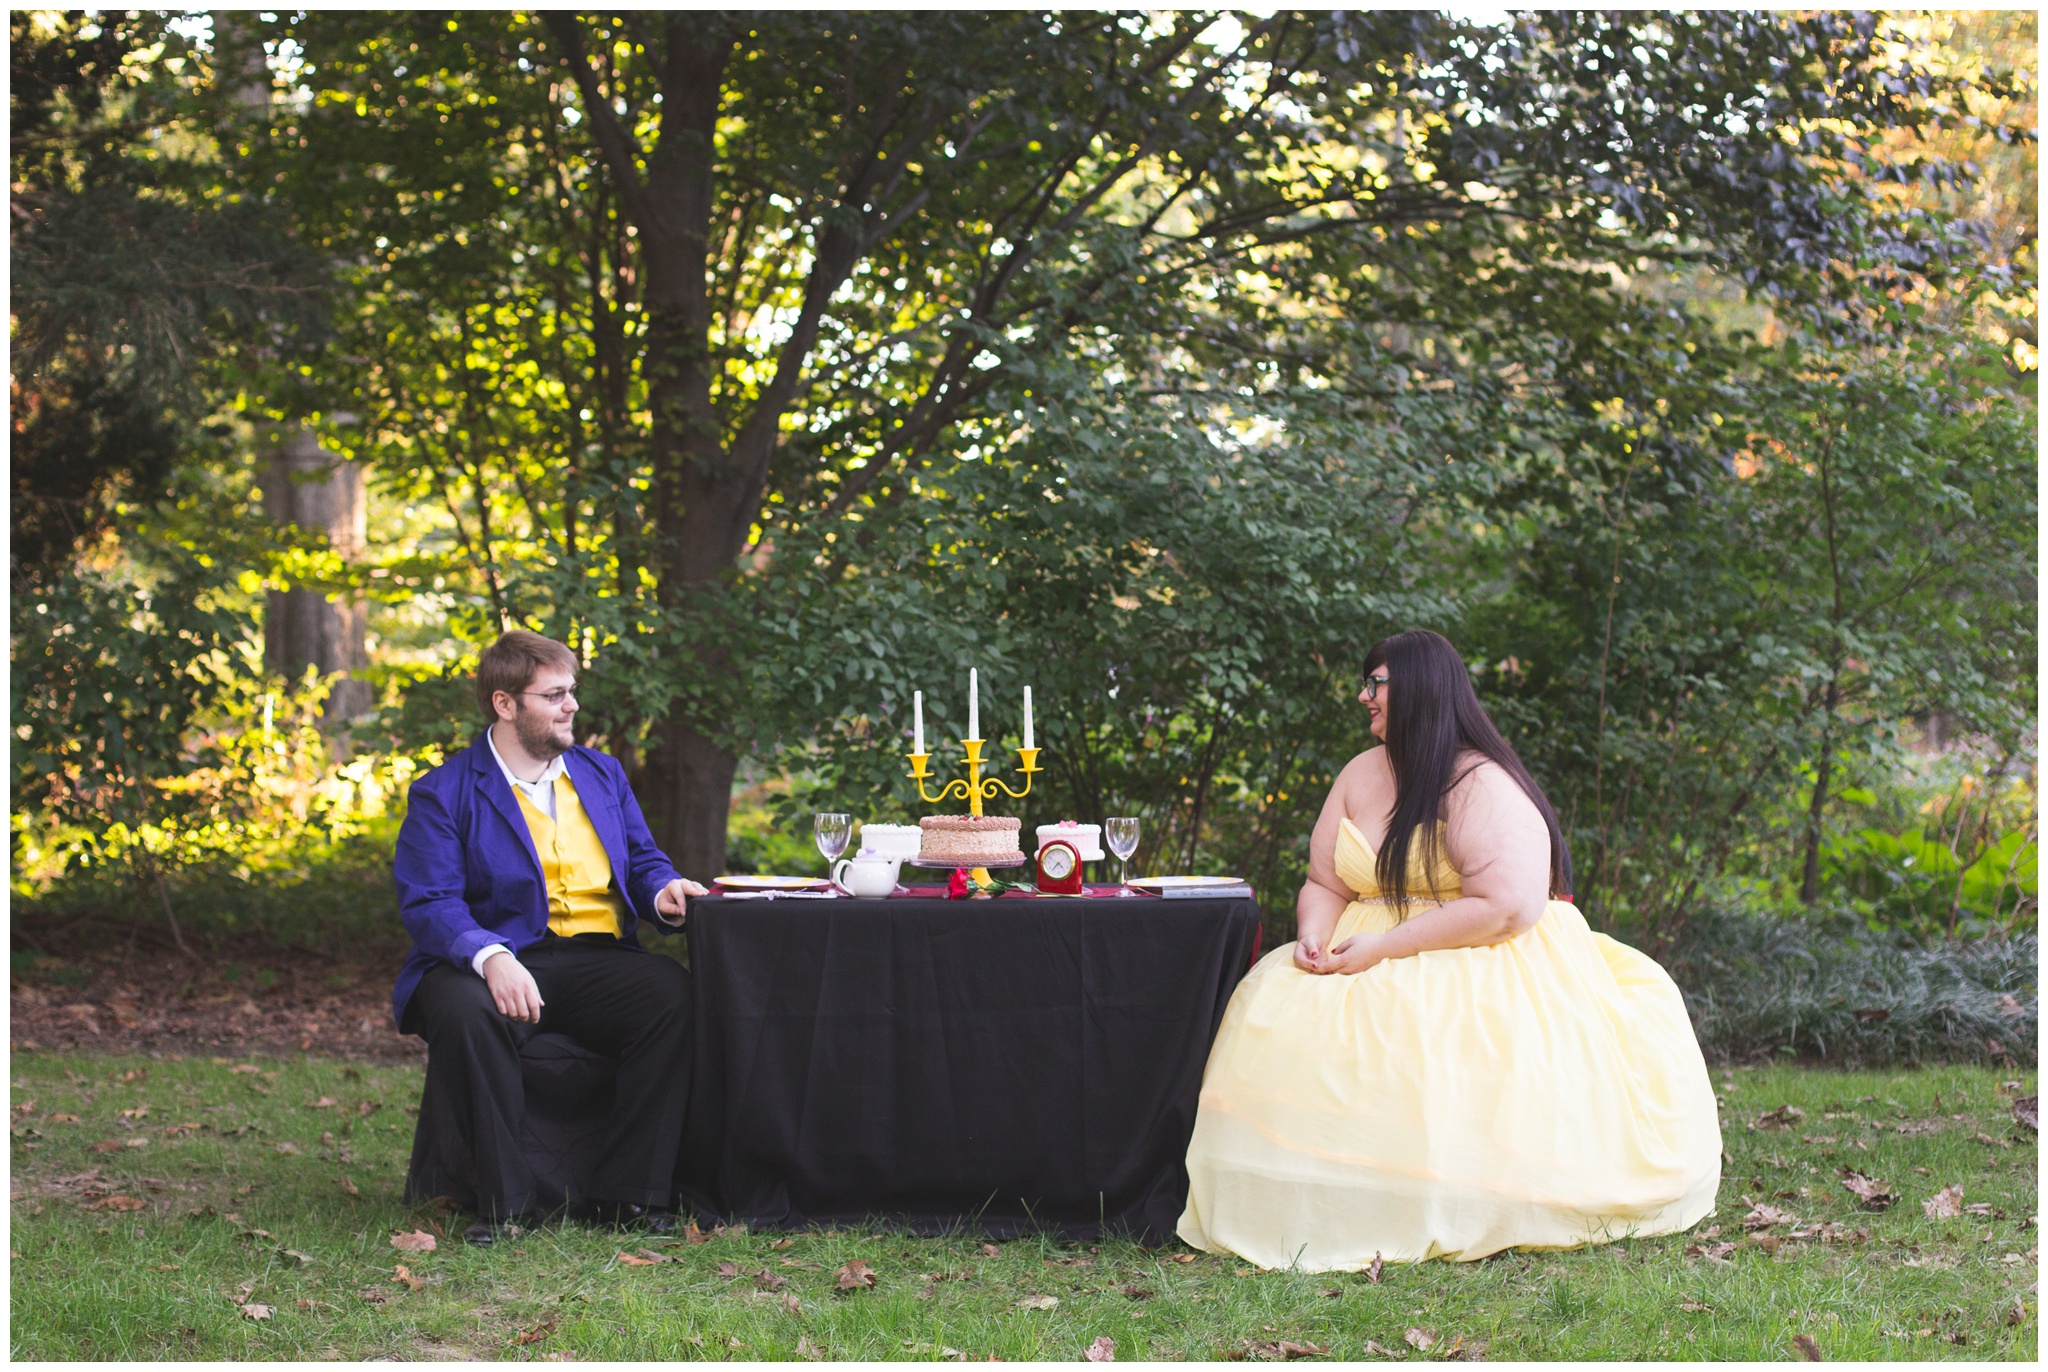 Beauty And The Beast Inspired Engagement Session At Indianapolis Museum Of Art